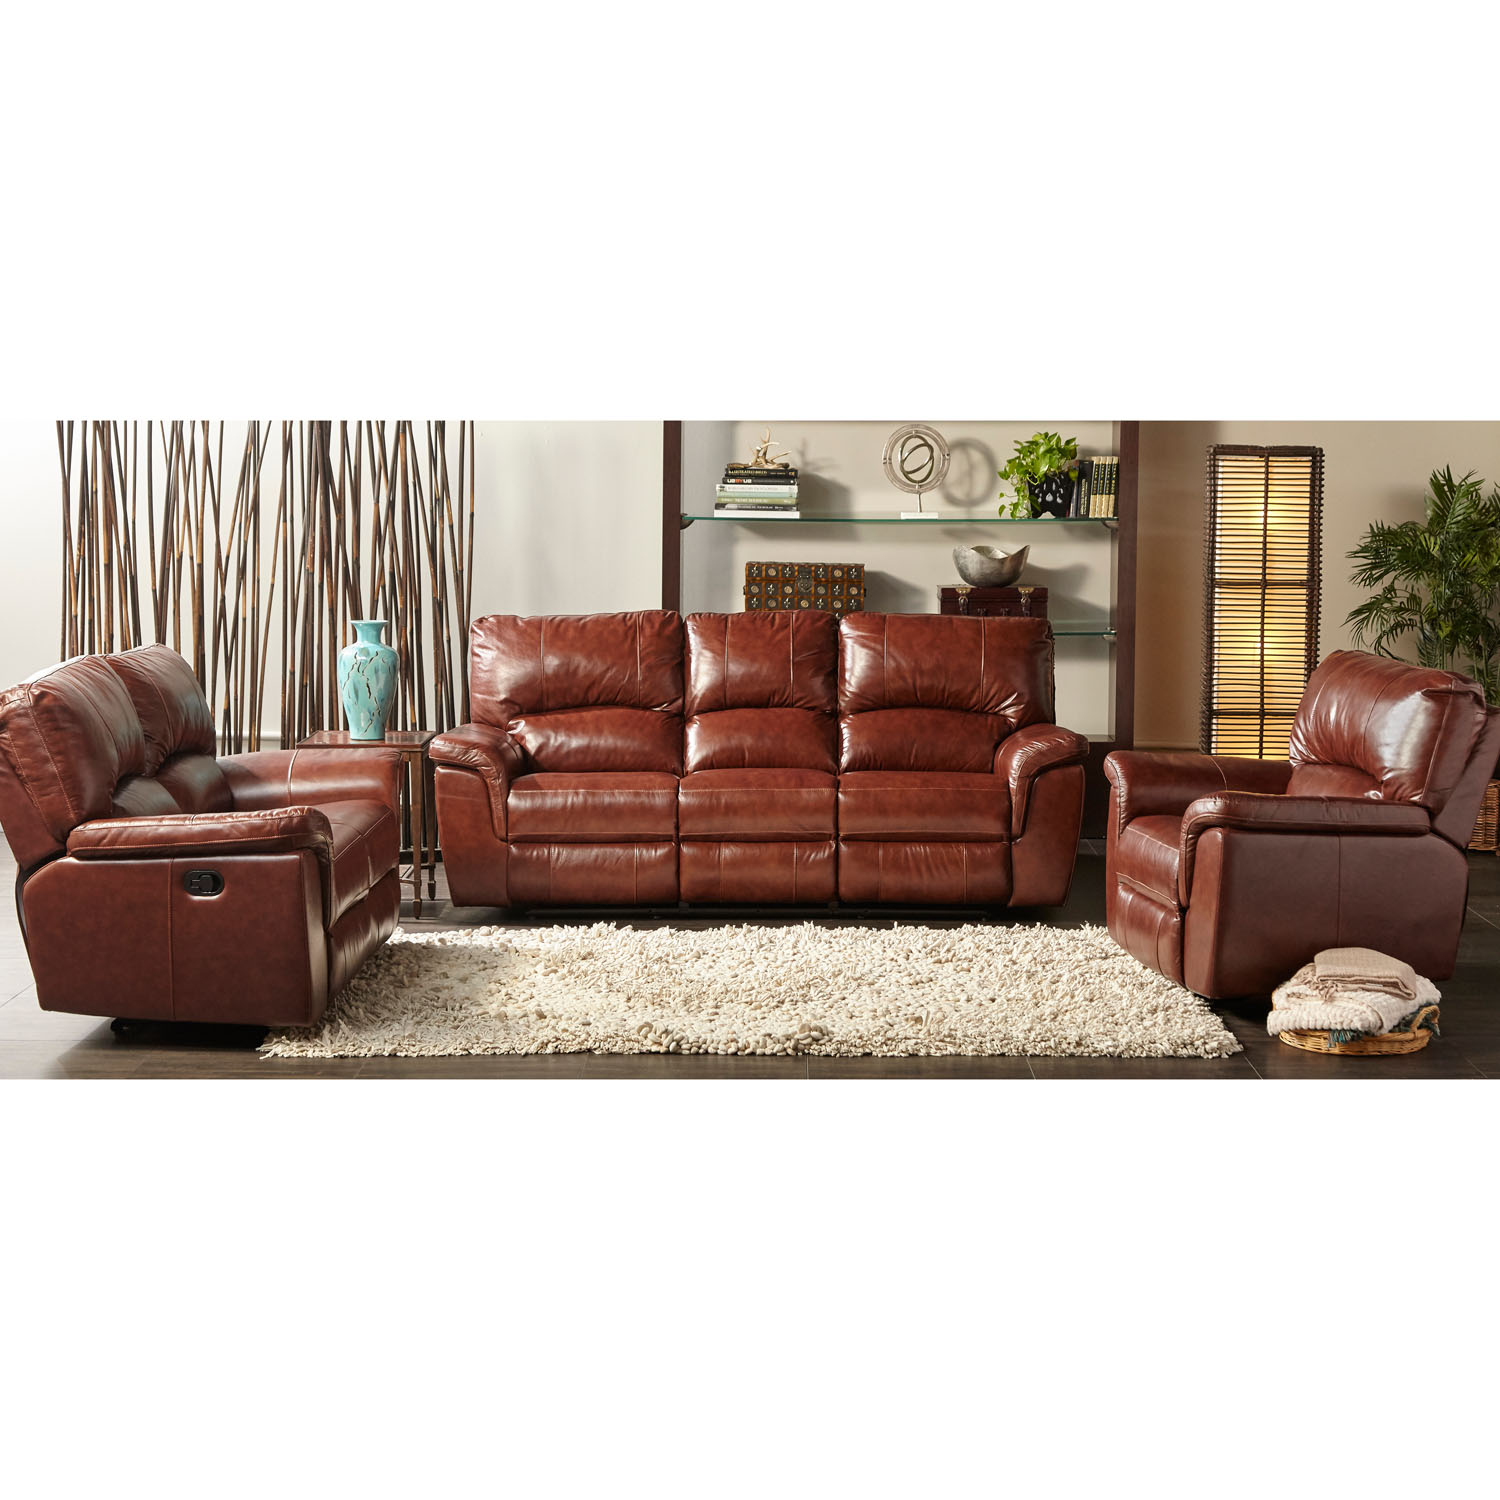 Cambridge Charleston Power Double Reclining Leather Sofa